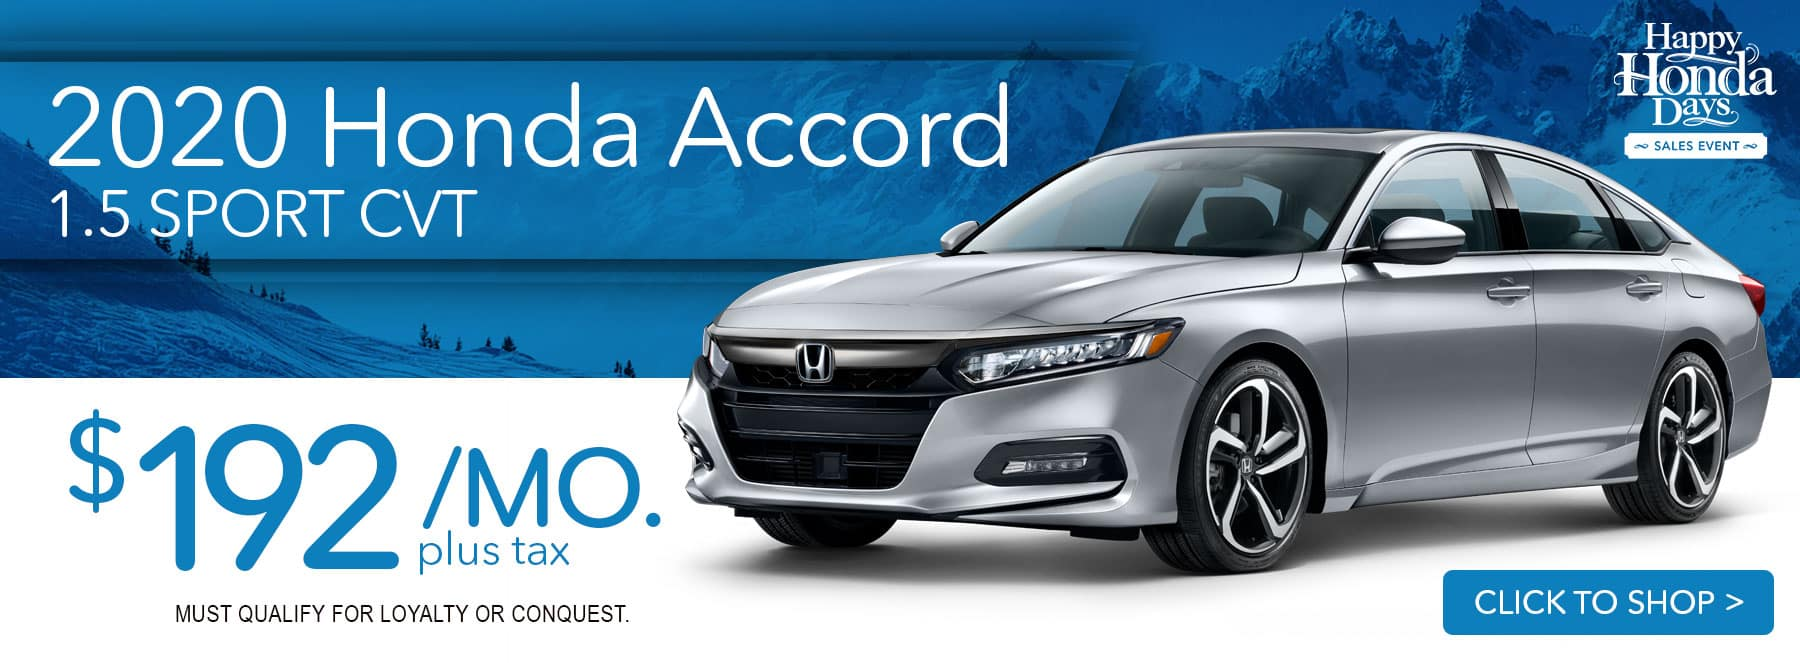 2020 Honda Accord 1.5 Sport $192 a month